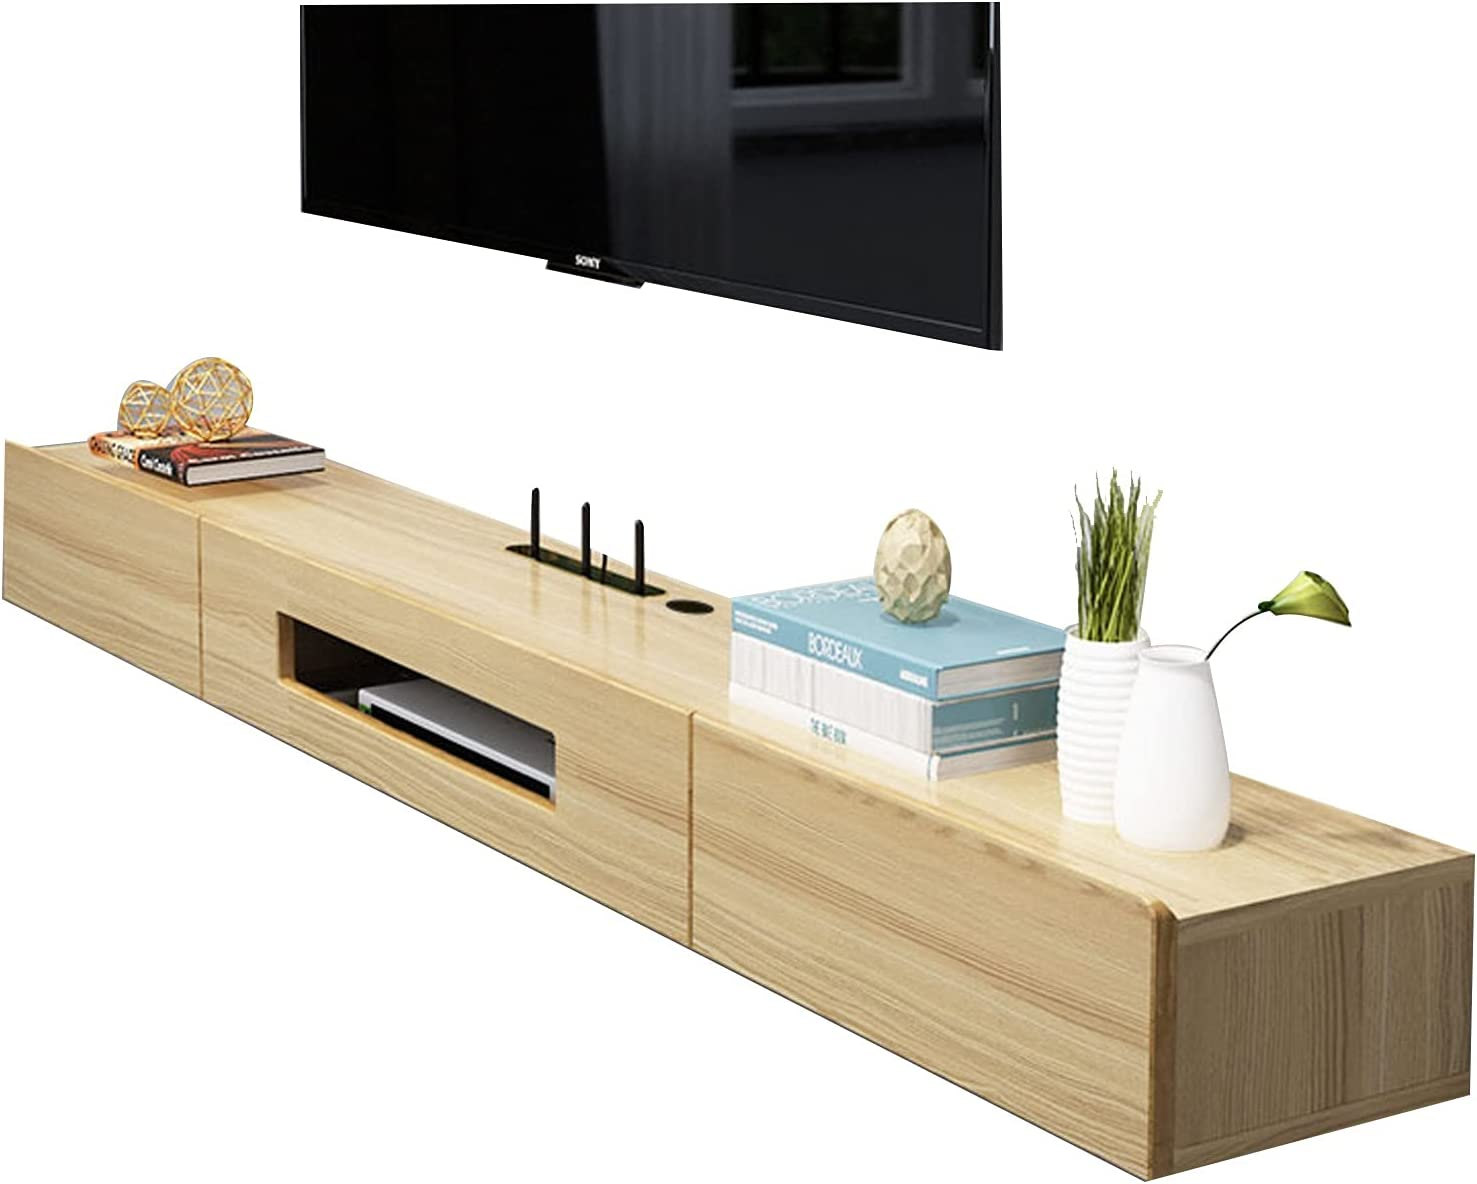 Bxzzj Floating service All items in the store TV Stand Component Shelf Cab Wall-Mounted 120